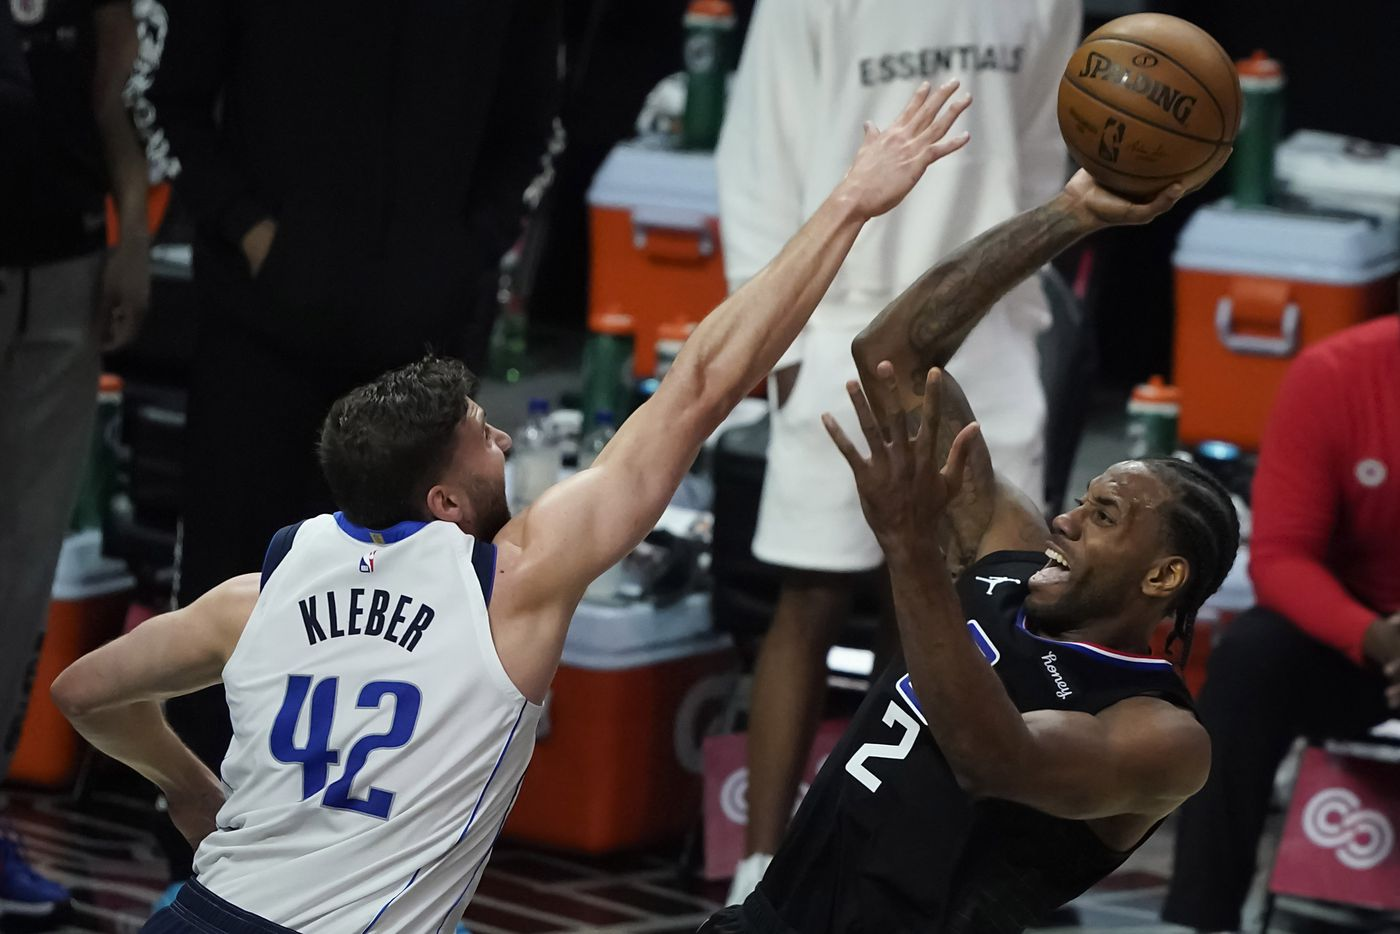 LA Clippers forward Kawhi Leonard (2) shoots over Dallas Mavericks forward Maxi Kleber (42) during the first half of an NBA playoff basketball game at Staples Center on Tuesday, May 25, 2021, in Los Angeles.